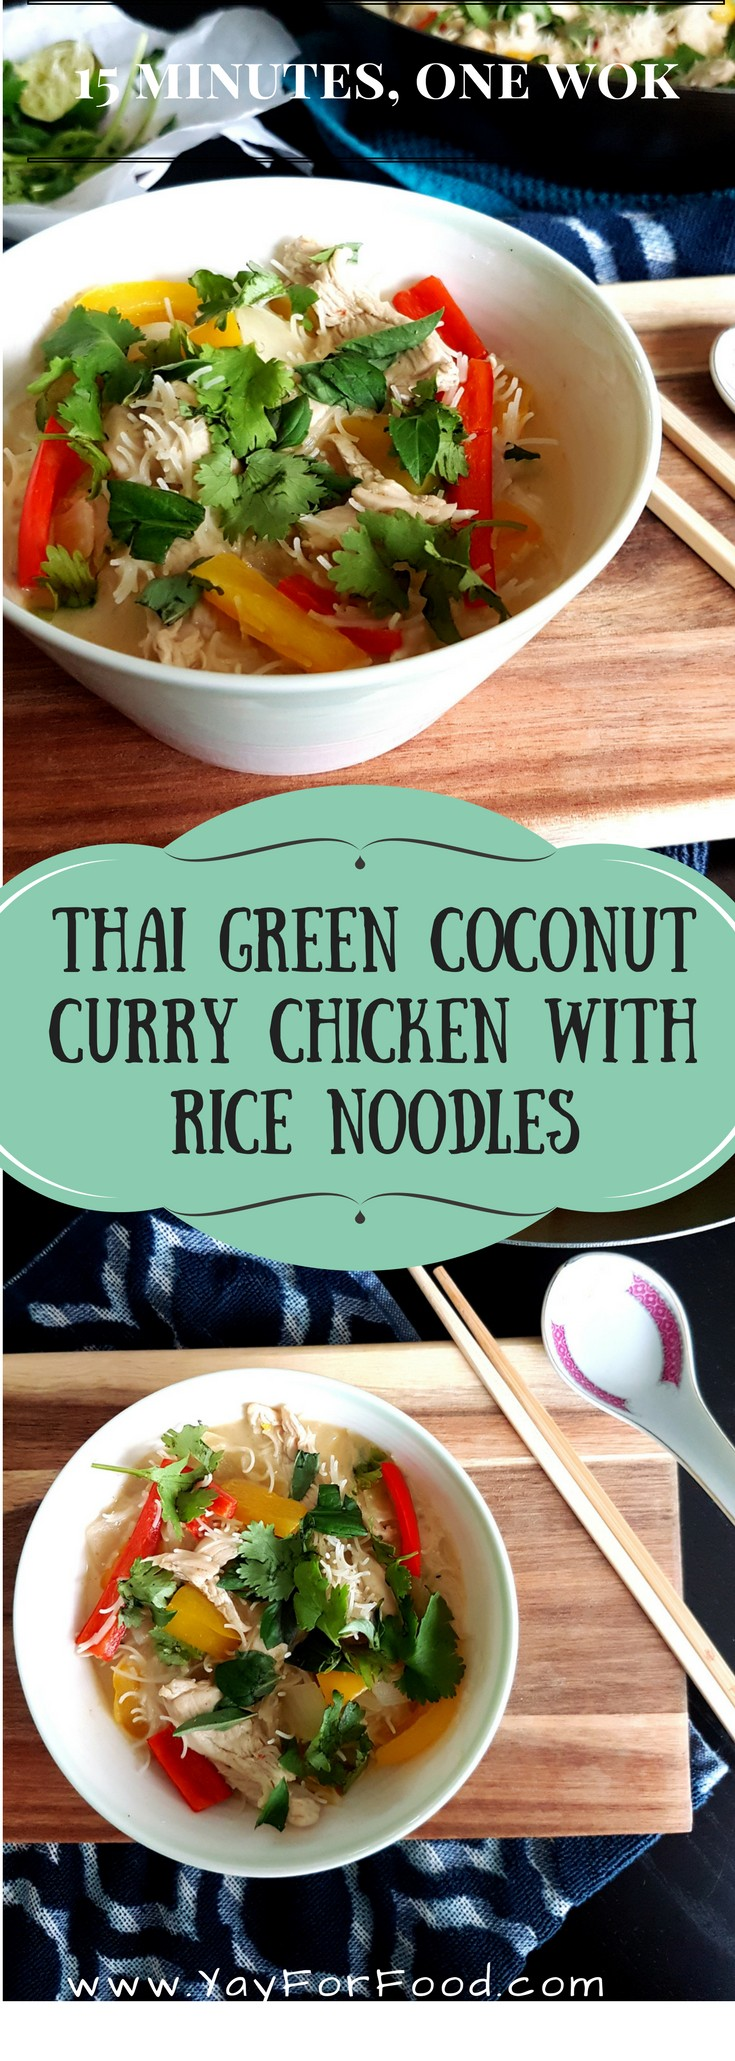 Minimal effort, maximum Thai flavours. This recipe has a bit of a spicy kick due to the addition of the aromatic green curry paste. The coconut milk gives the noodles a rich creaminess, and the green herbs provides a flavourful freshness to this easy meal.